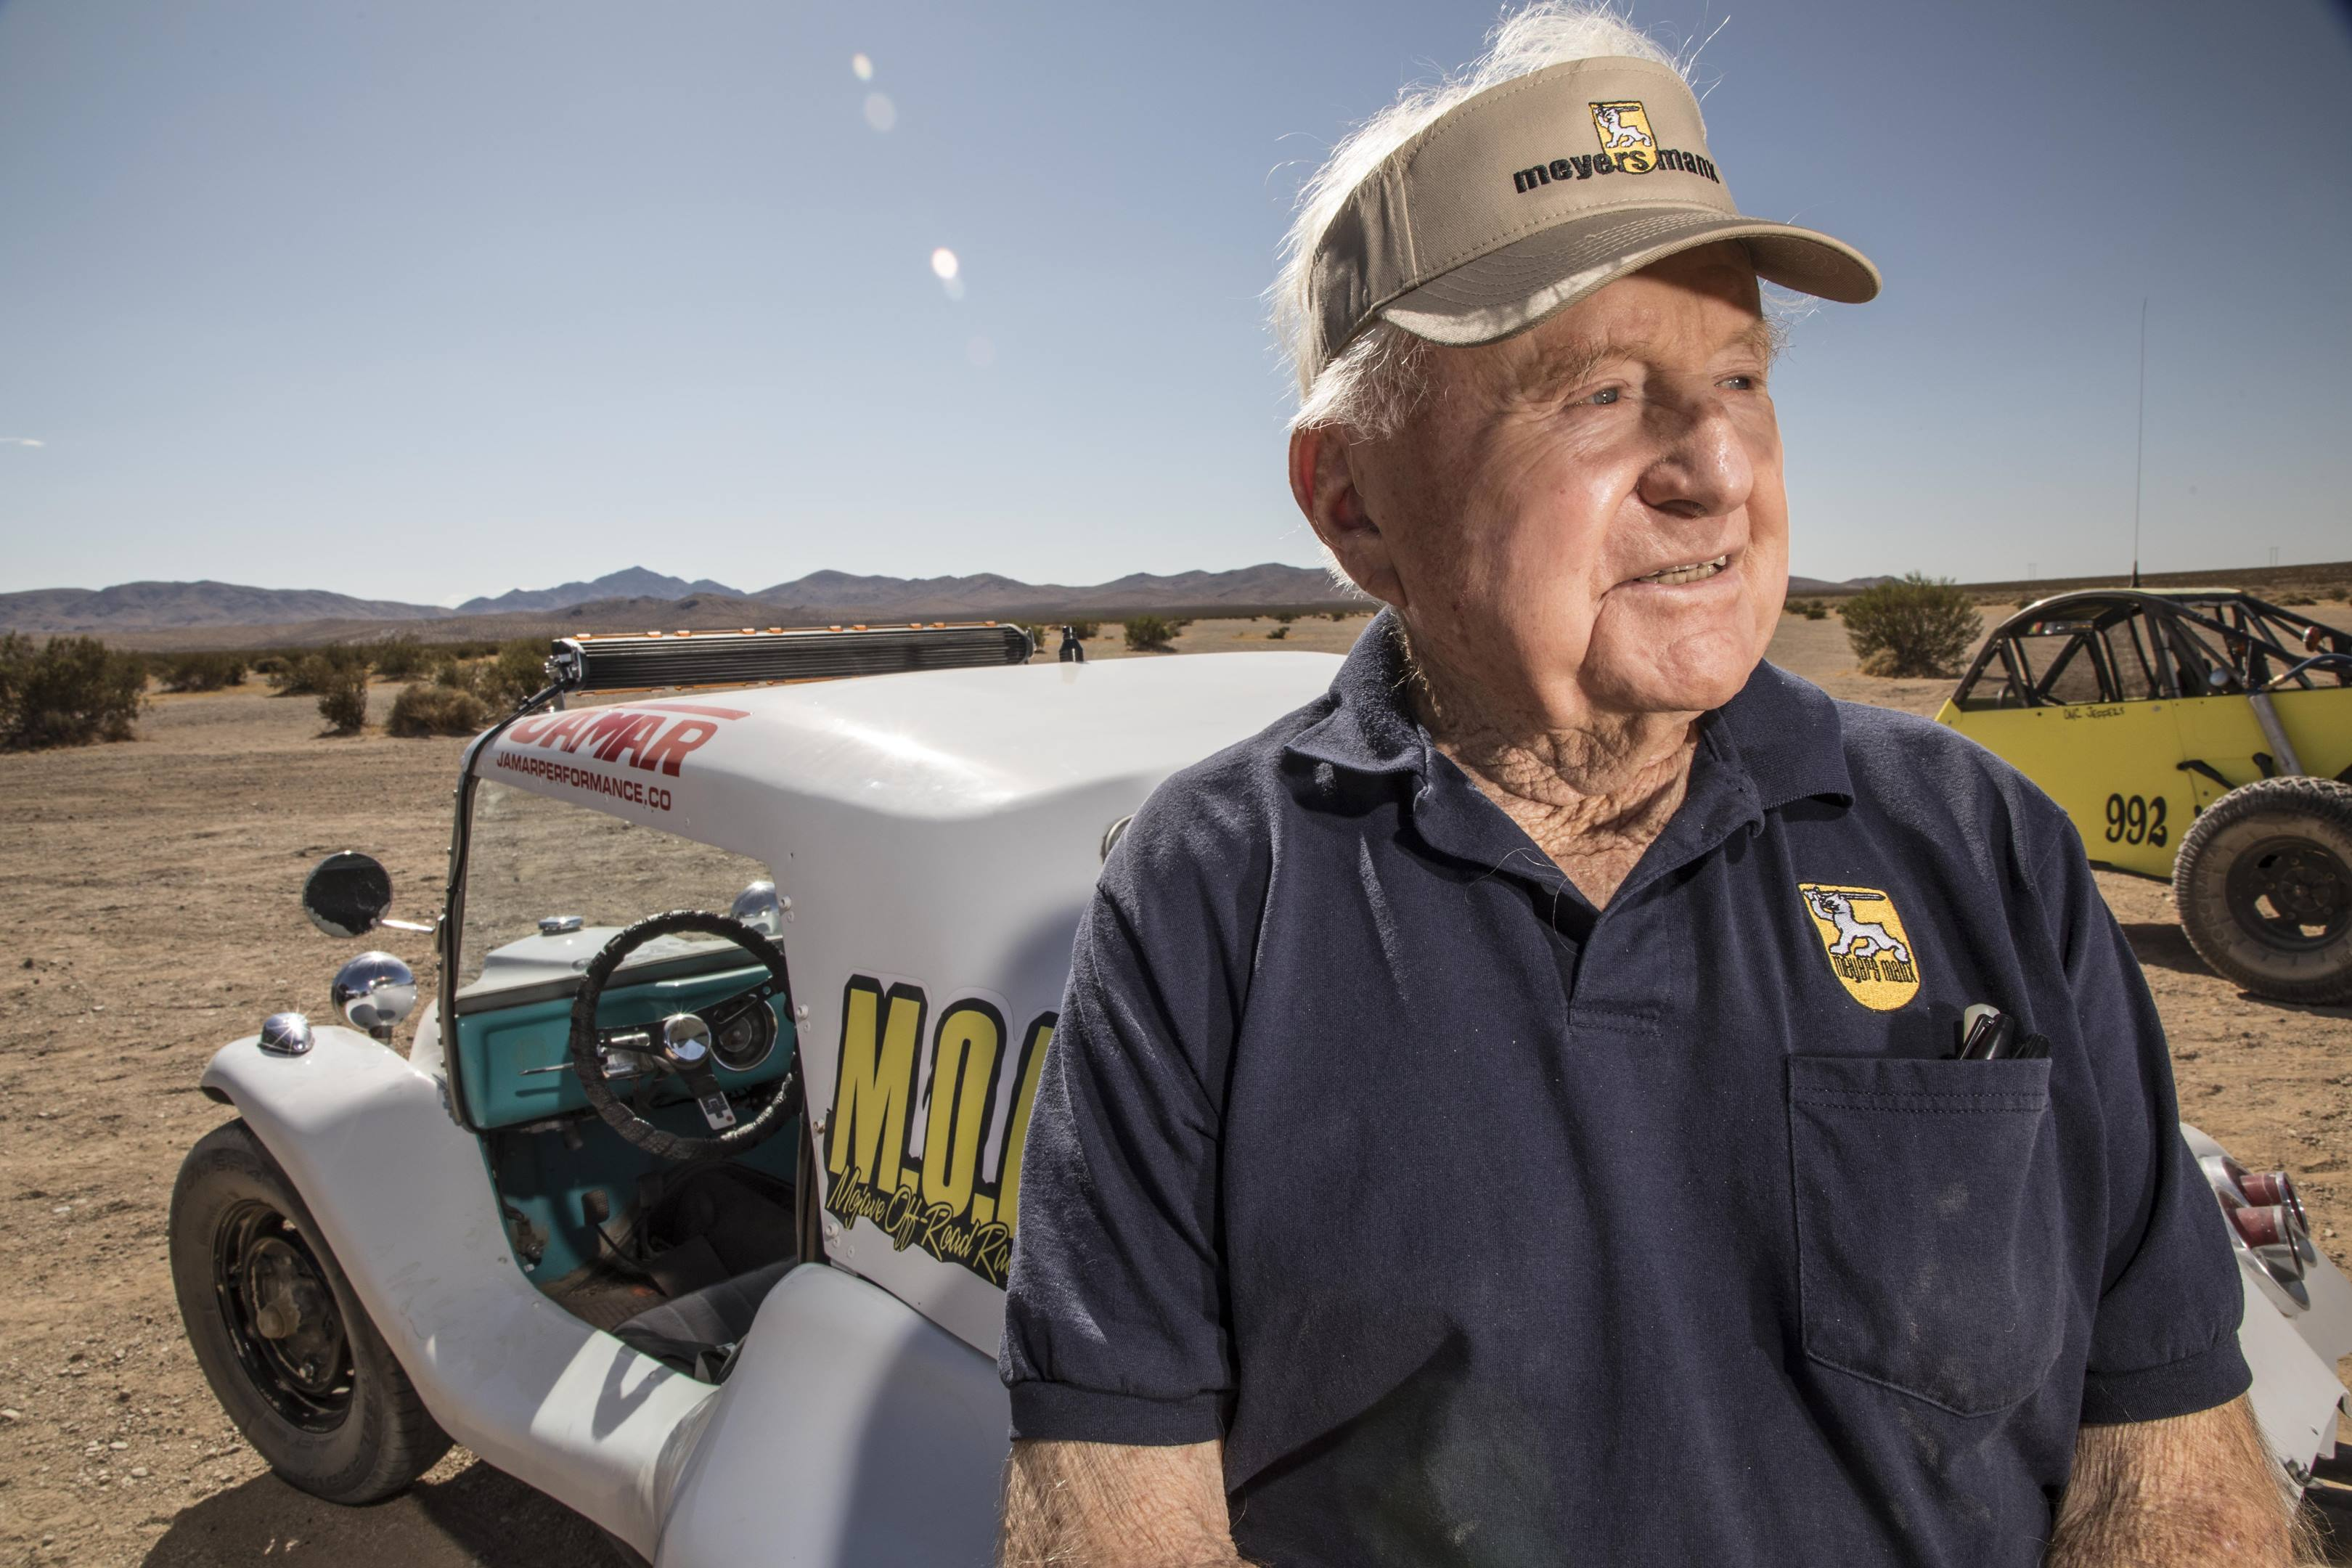 Bruce Meyers, 91 and full of stories, recalls a life fully lived, from building boats to creating the Meyers Manx dune buggy to launching Baja racing over drinks in a Mexican hotel.